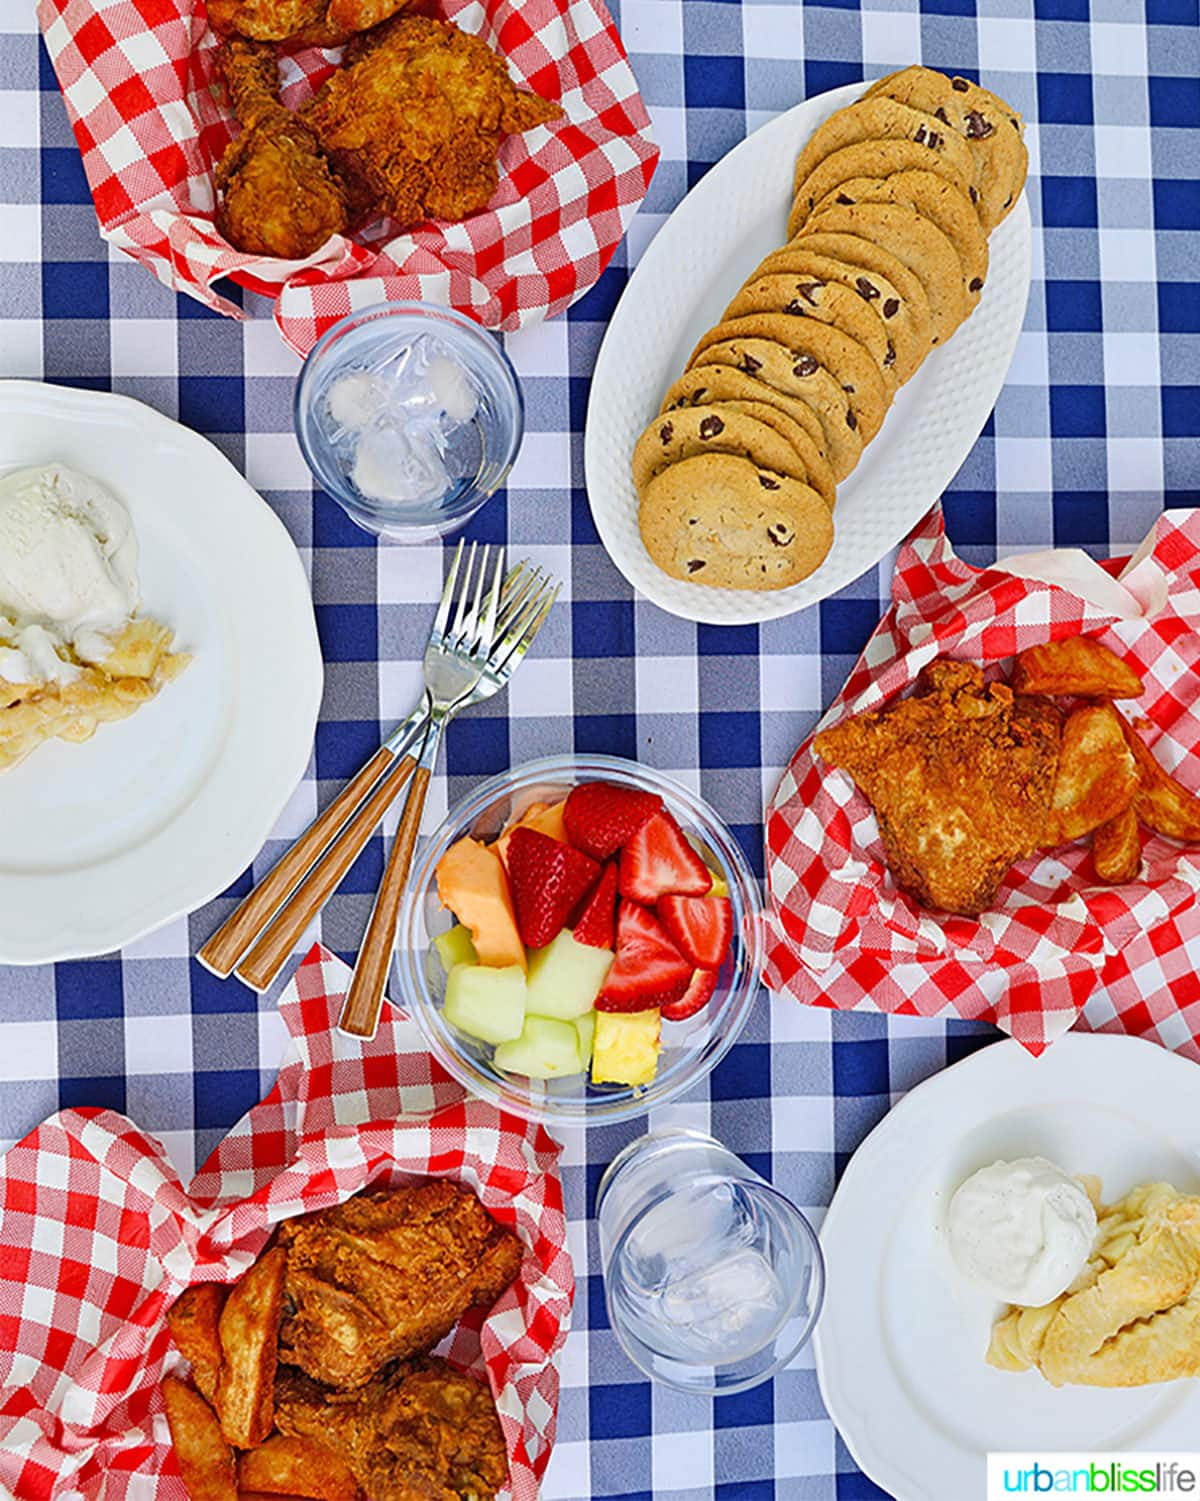 summer outdoor picnic with fried chicken, jo jos, cookies, fruit, on a blue and white checkered tablecloth